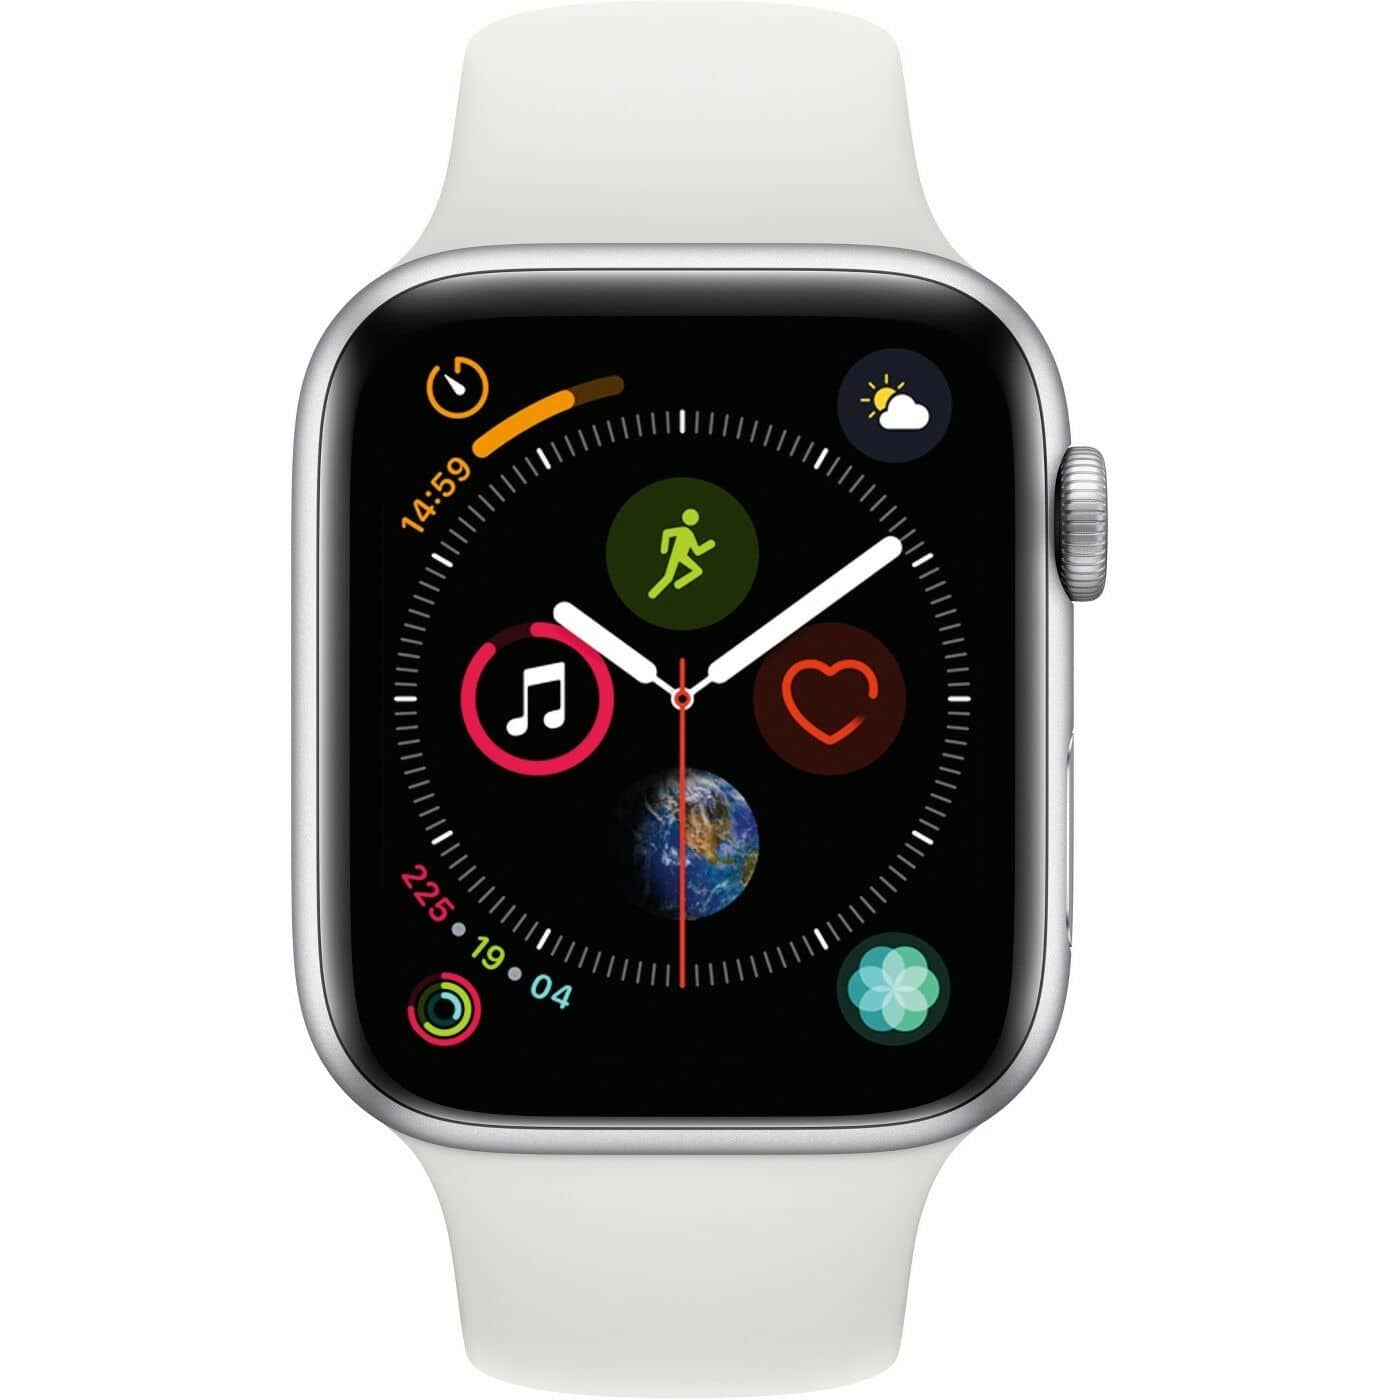 Apple Watch Series 4 44mm (Refurbished) $288 + Free Shipping